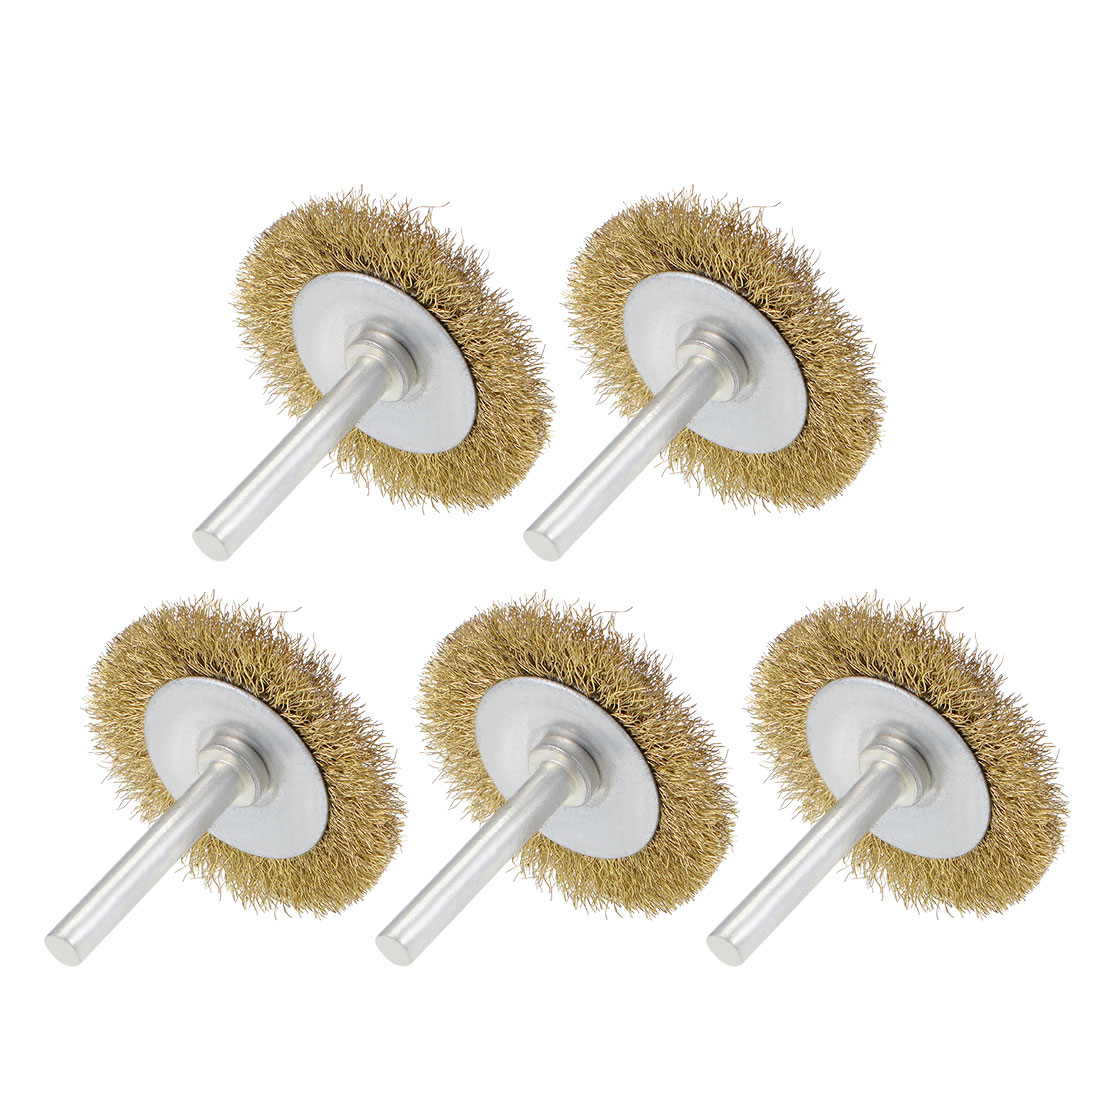 2-Inch Wire Wheel Brush Bench Brass Plated Crimped Steel w 1/4-Inch Shank 5 Pcs